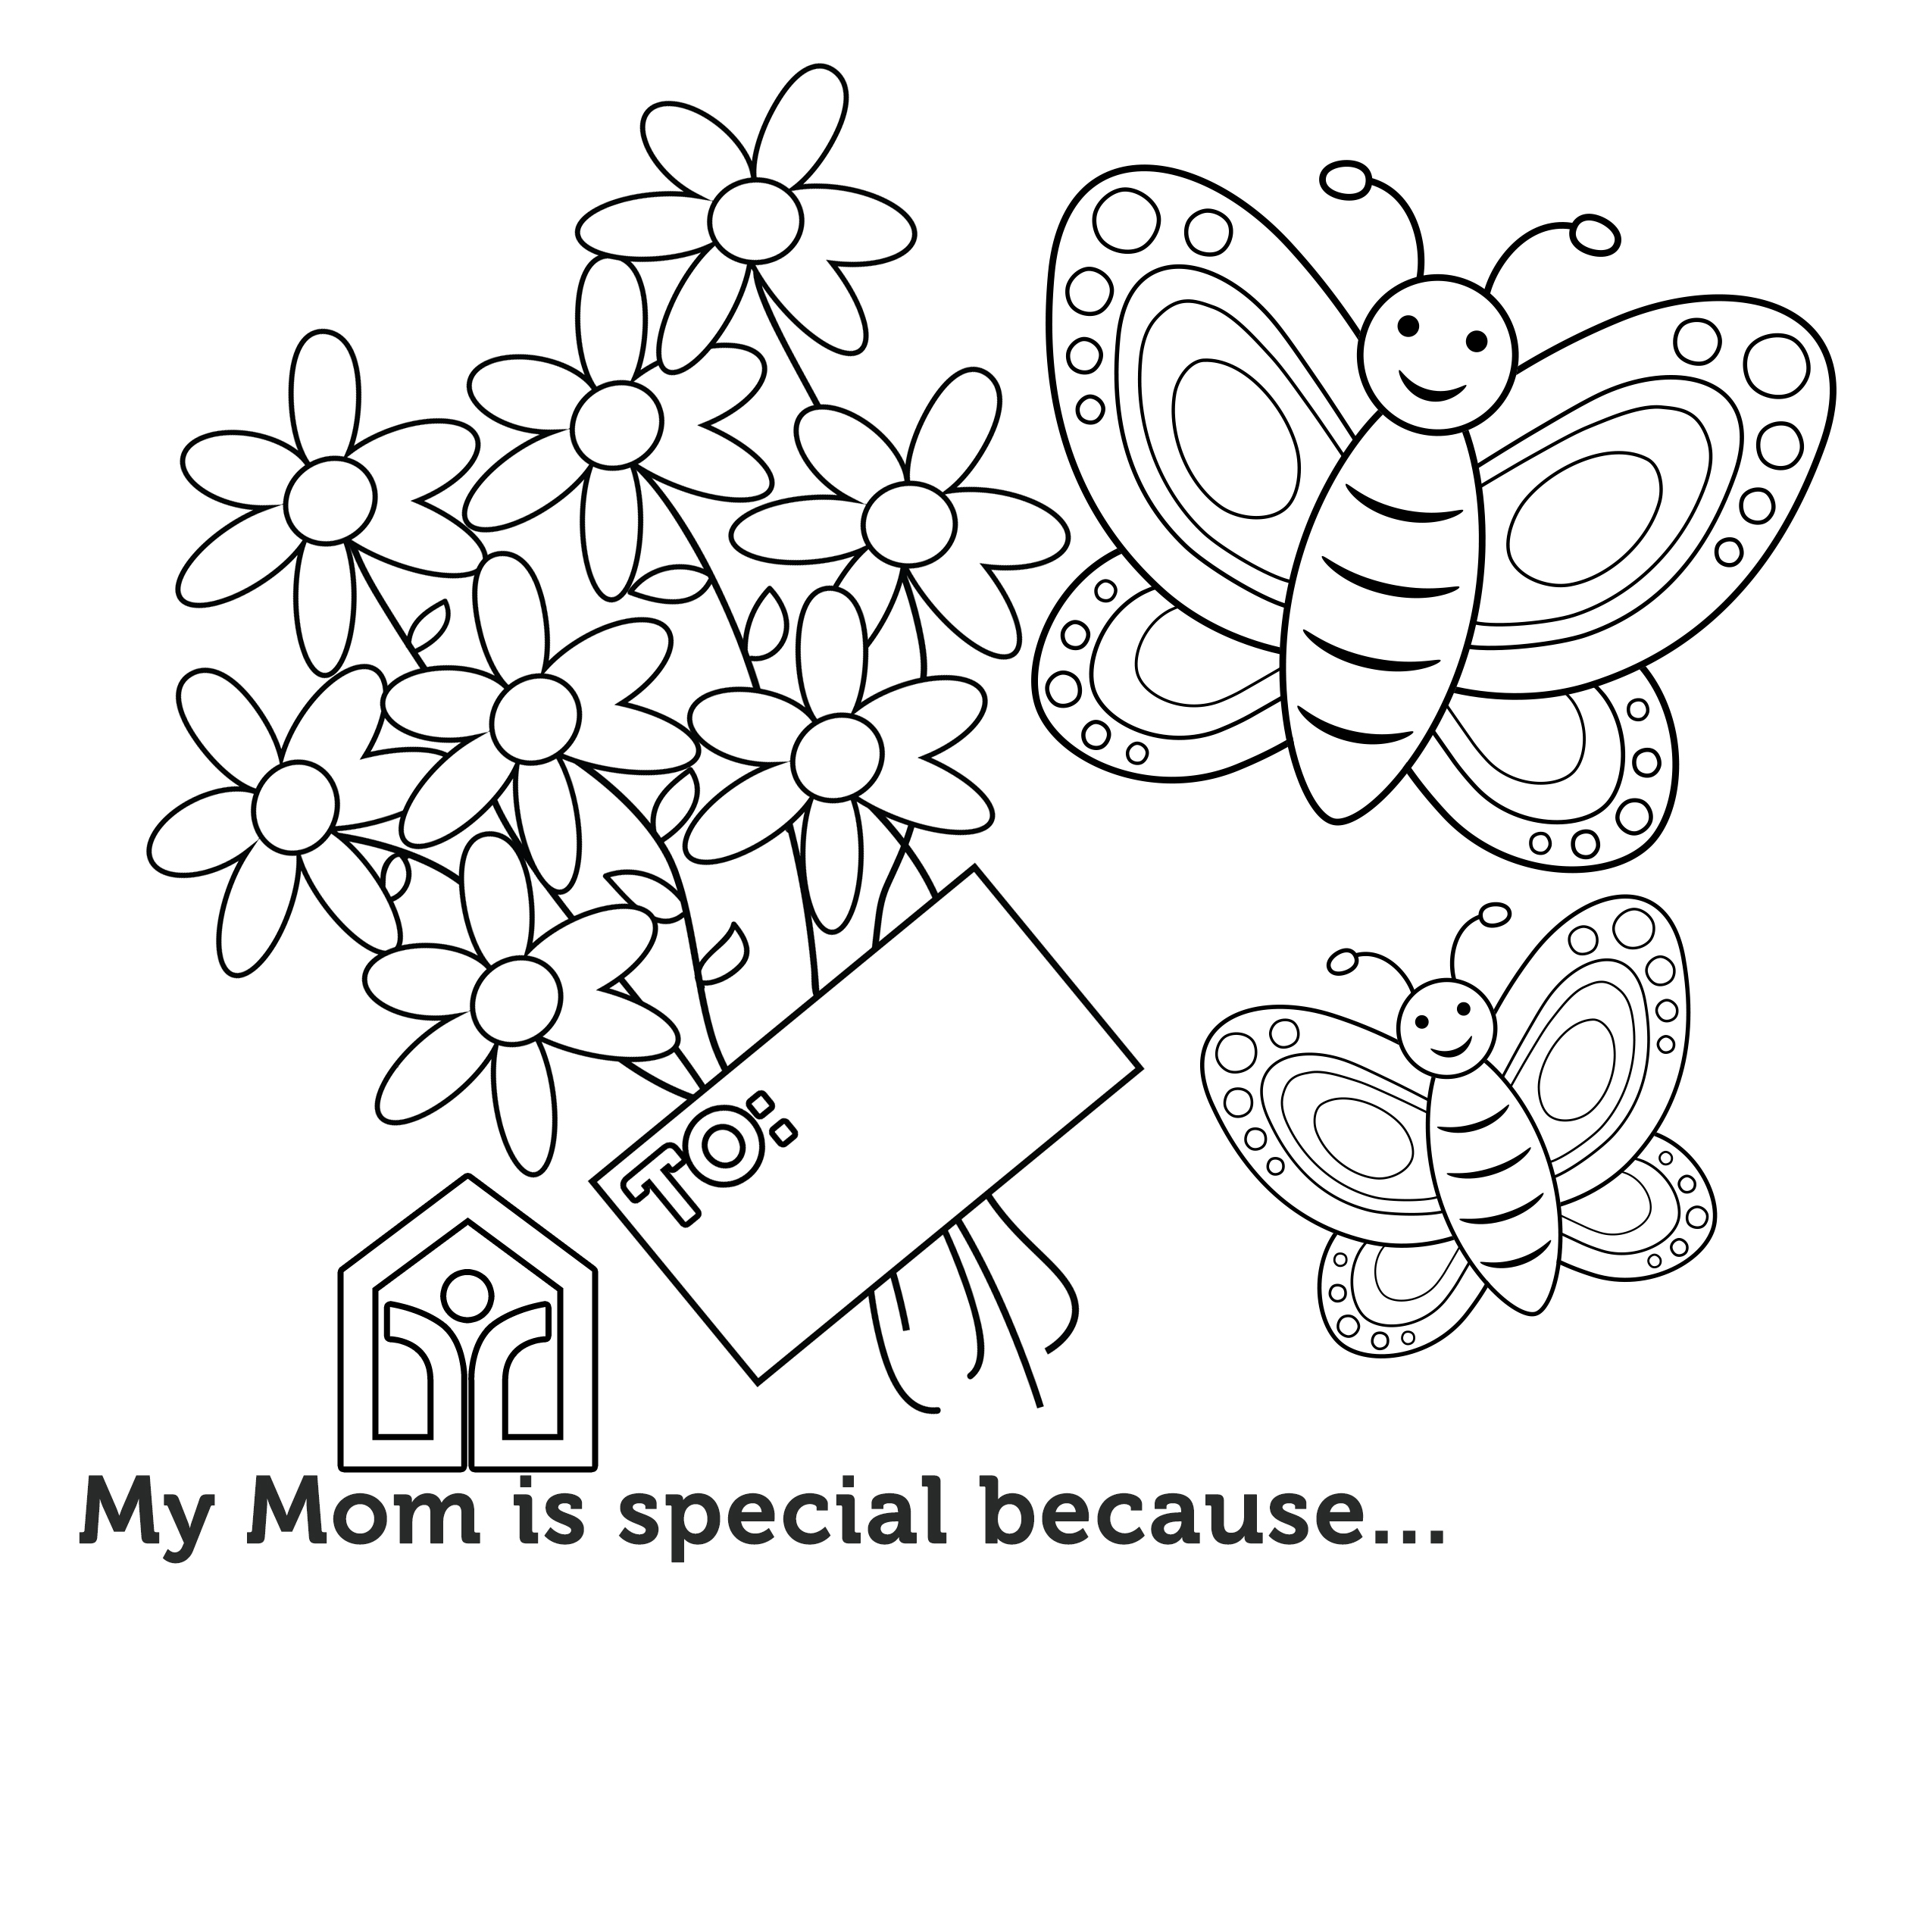 Mother's Day Coloring Contest 2020